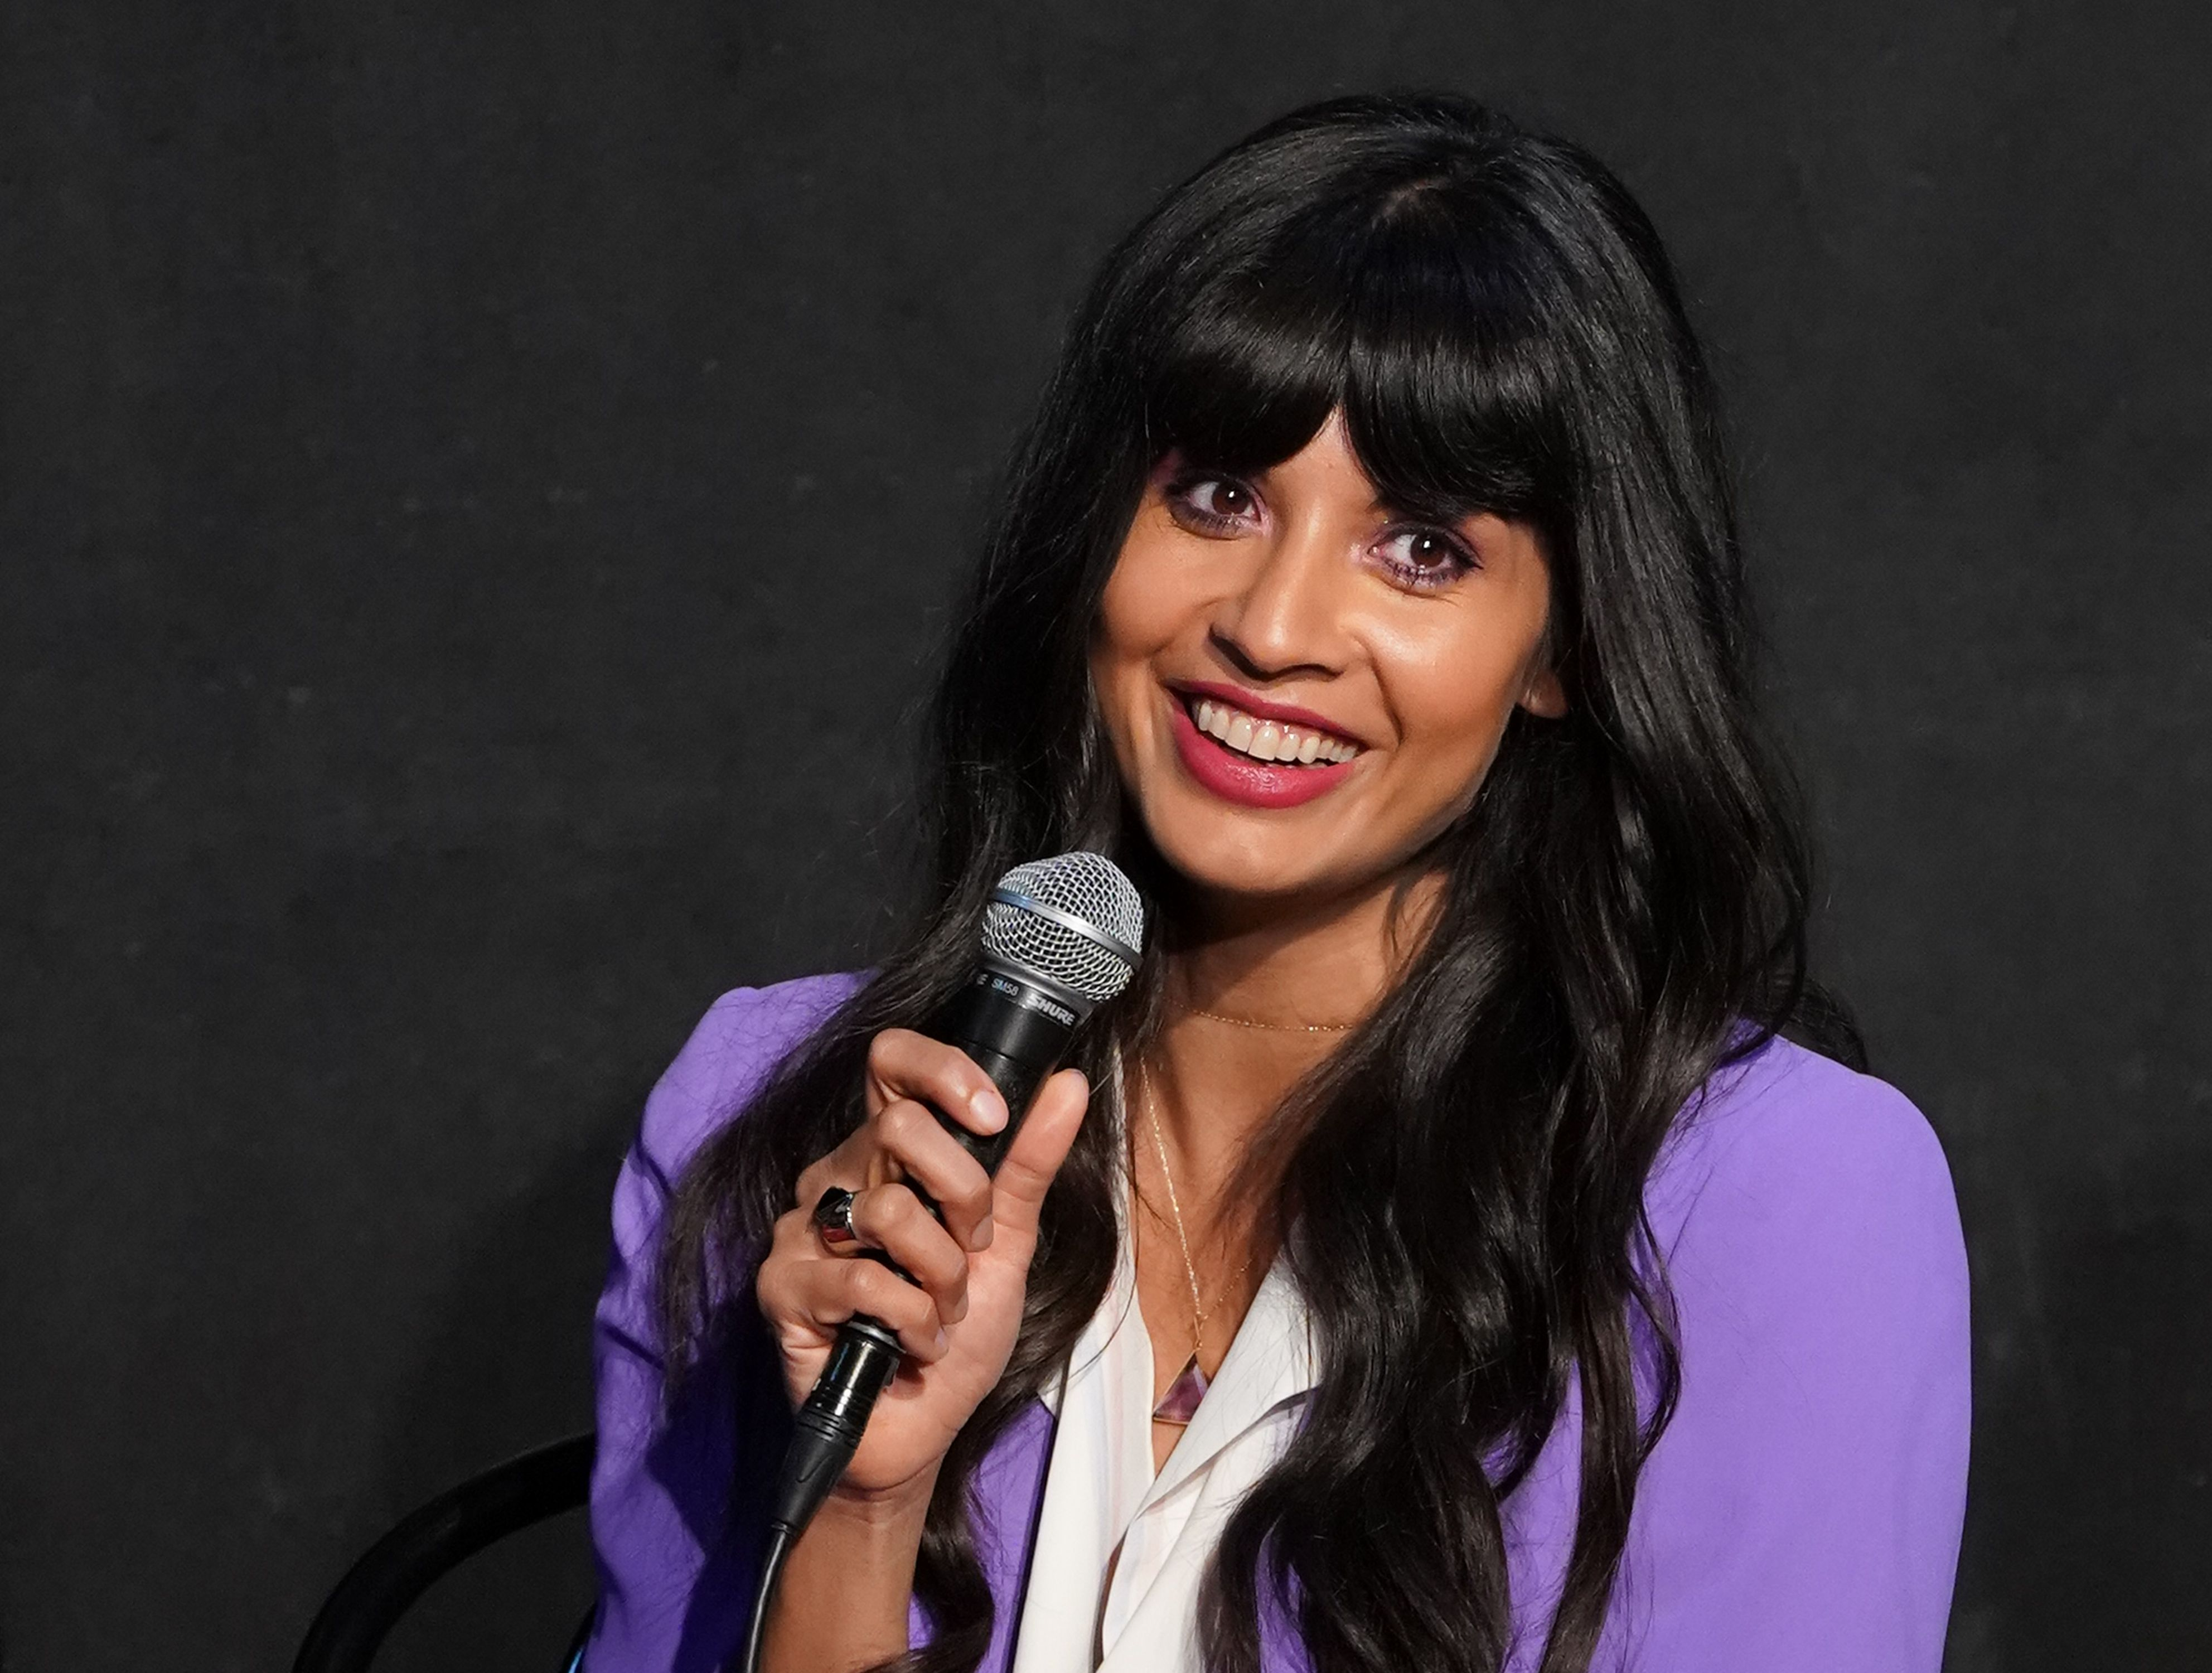 Jameela Jamil has a cute smile on her face as she holds a microphone to her mouth while addressing a crowd.